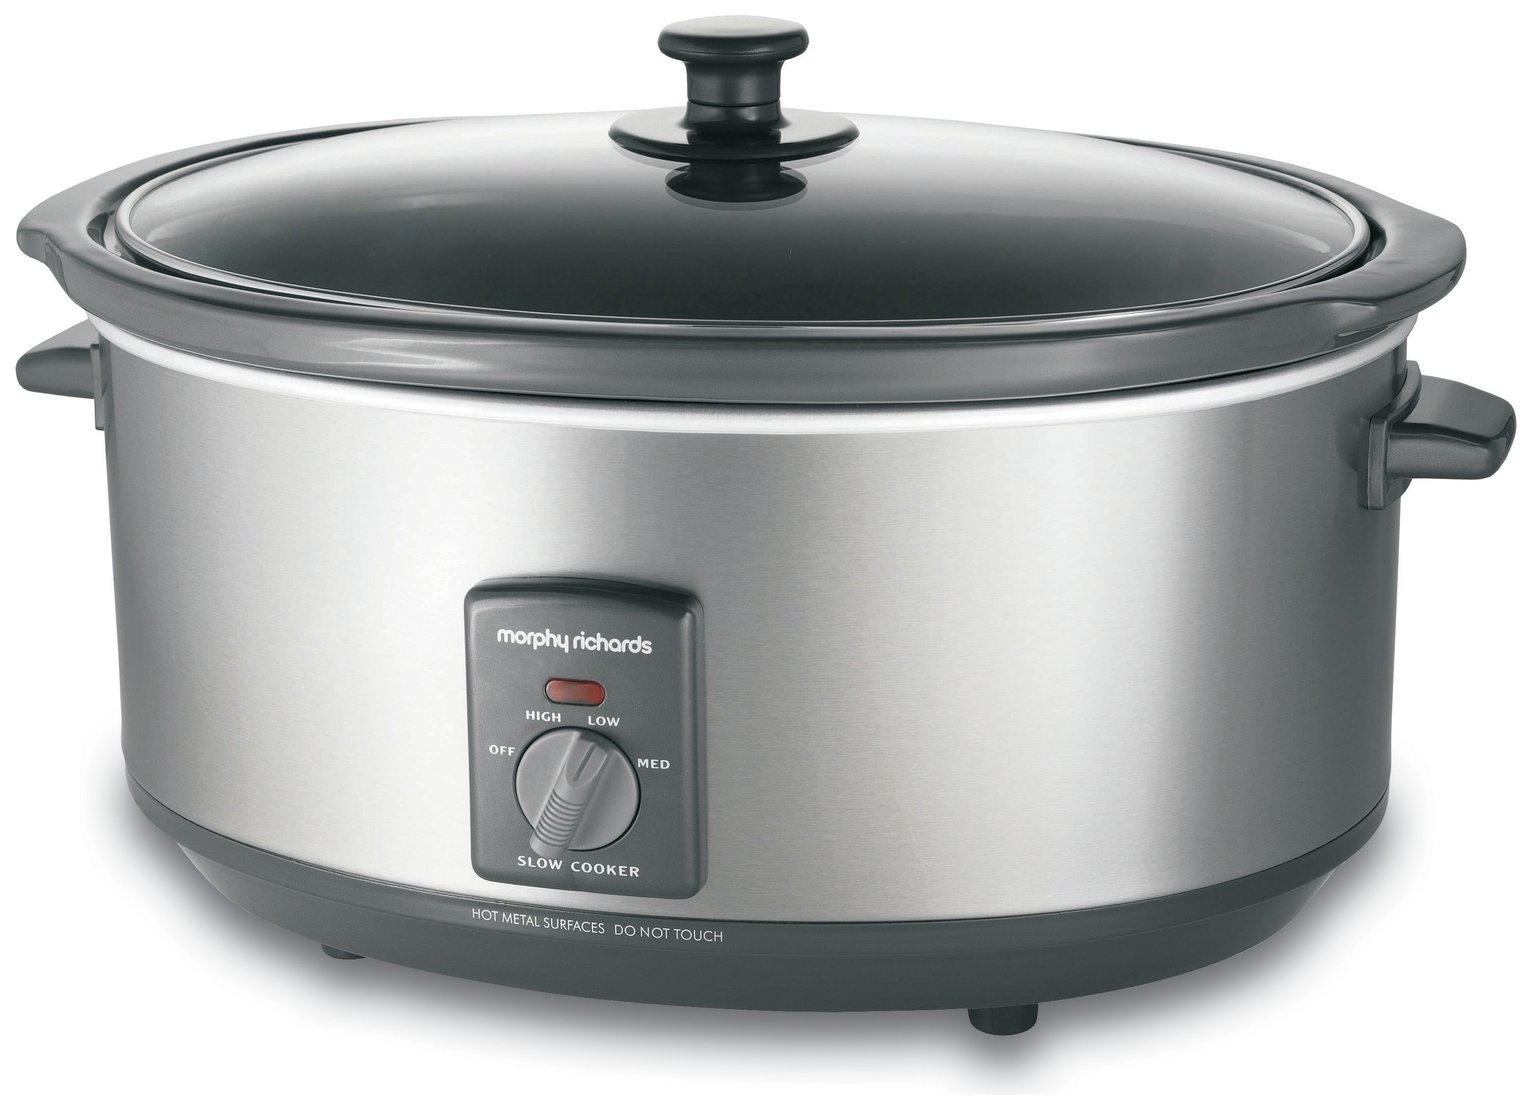 Image of Morphy Richards 48715A 6.5L Slow Cooker